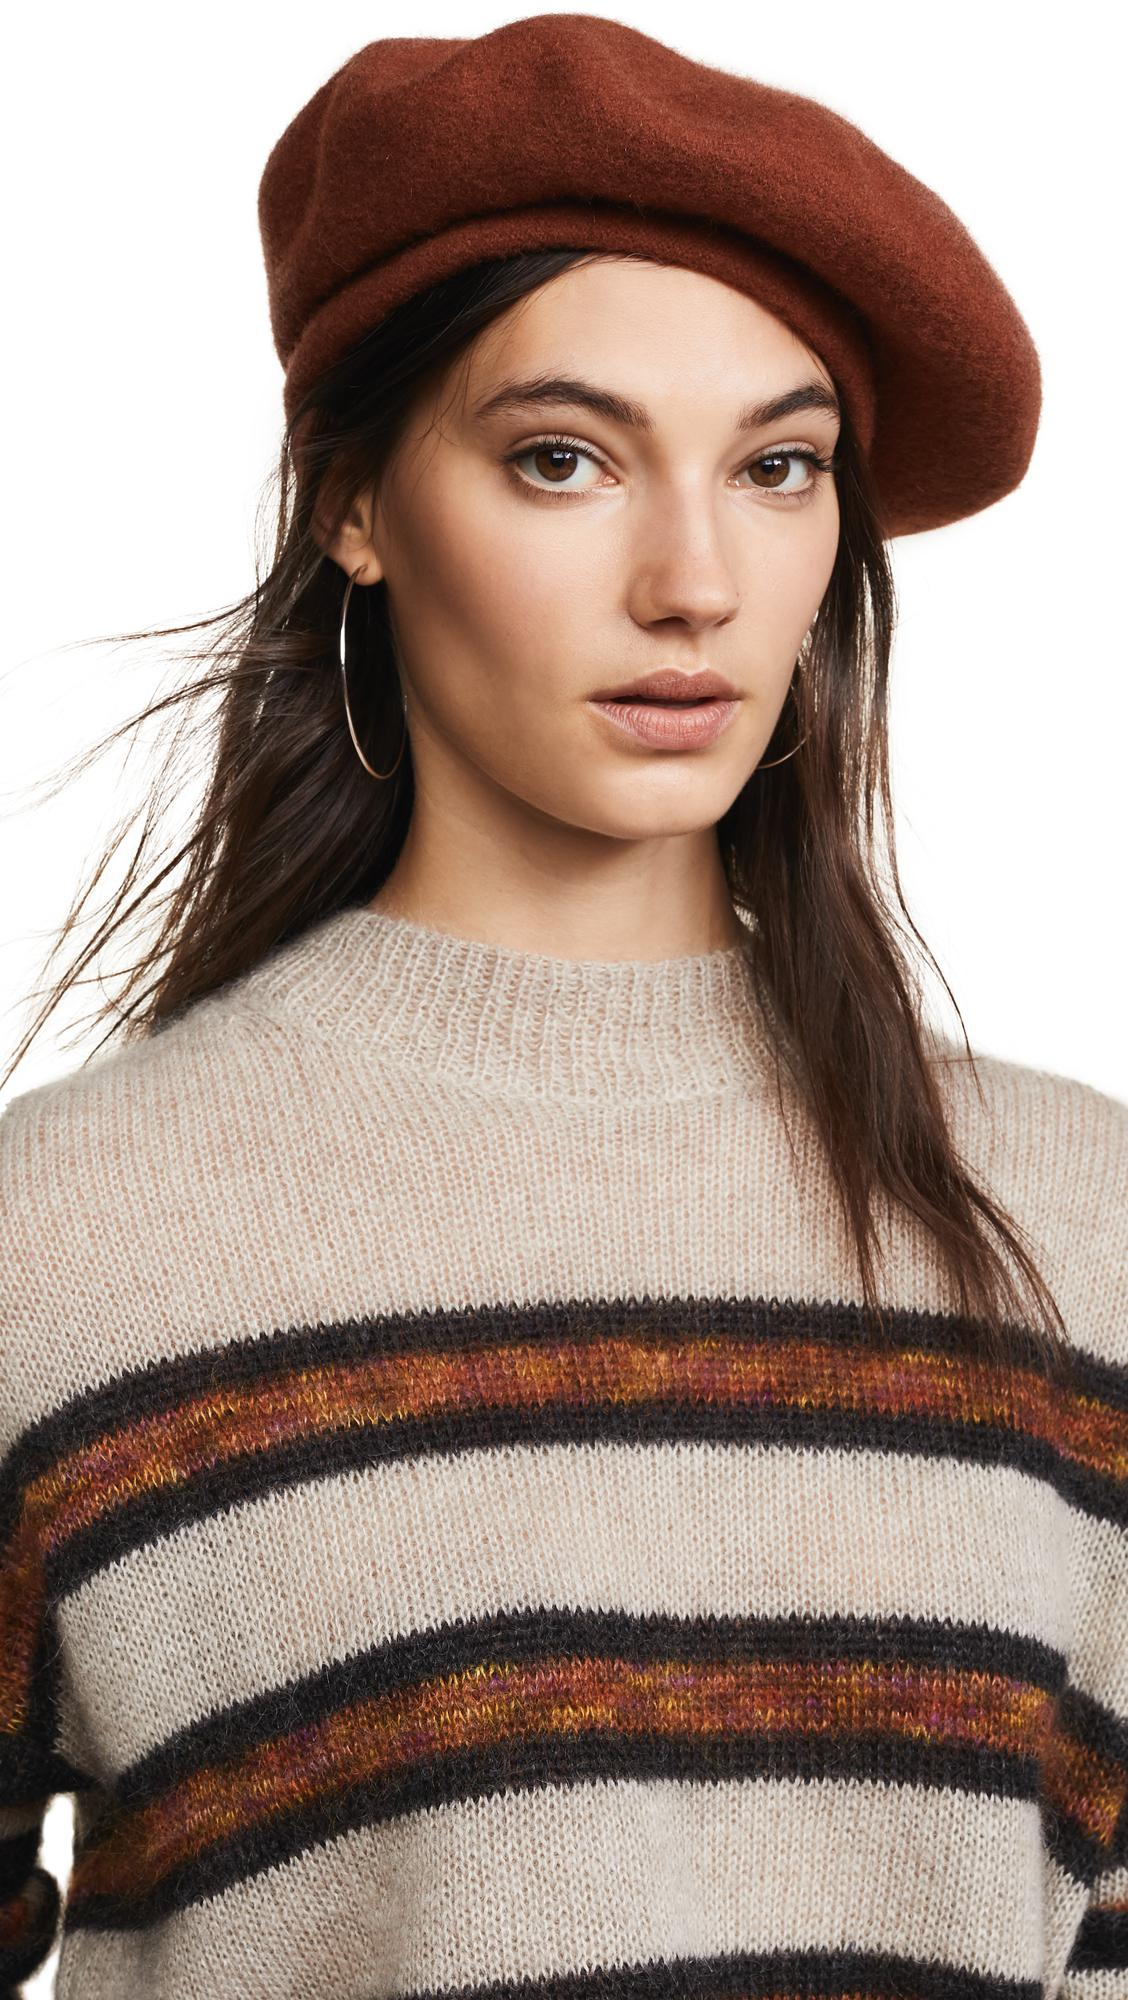 Brixton Audrey Beret Hat in Brown - Lyst fdc3eed166da